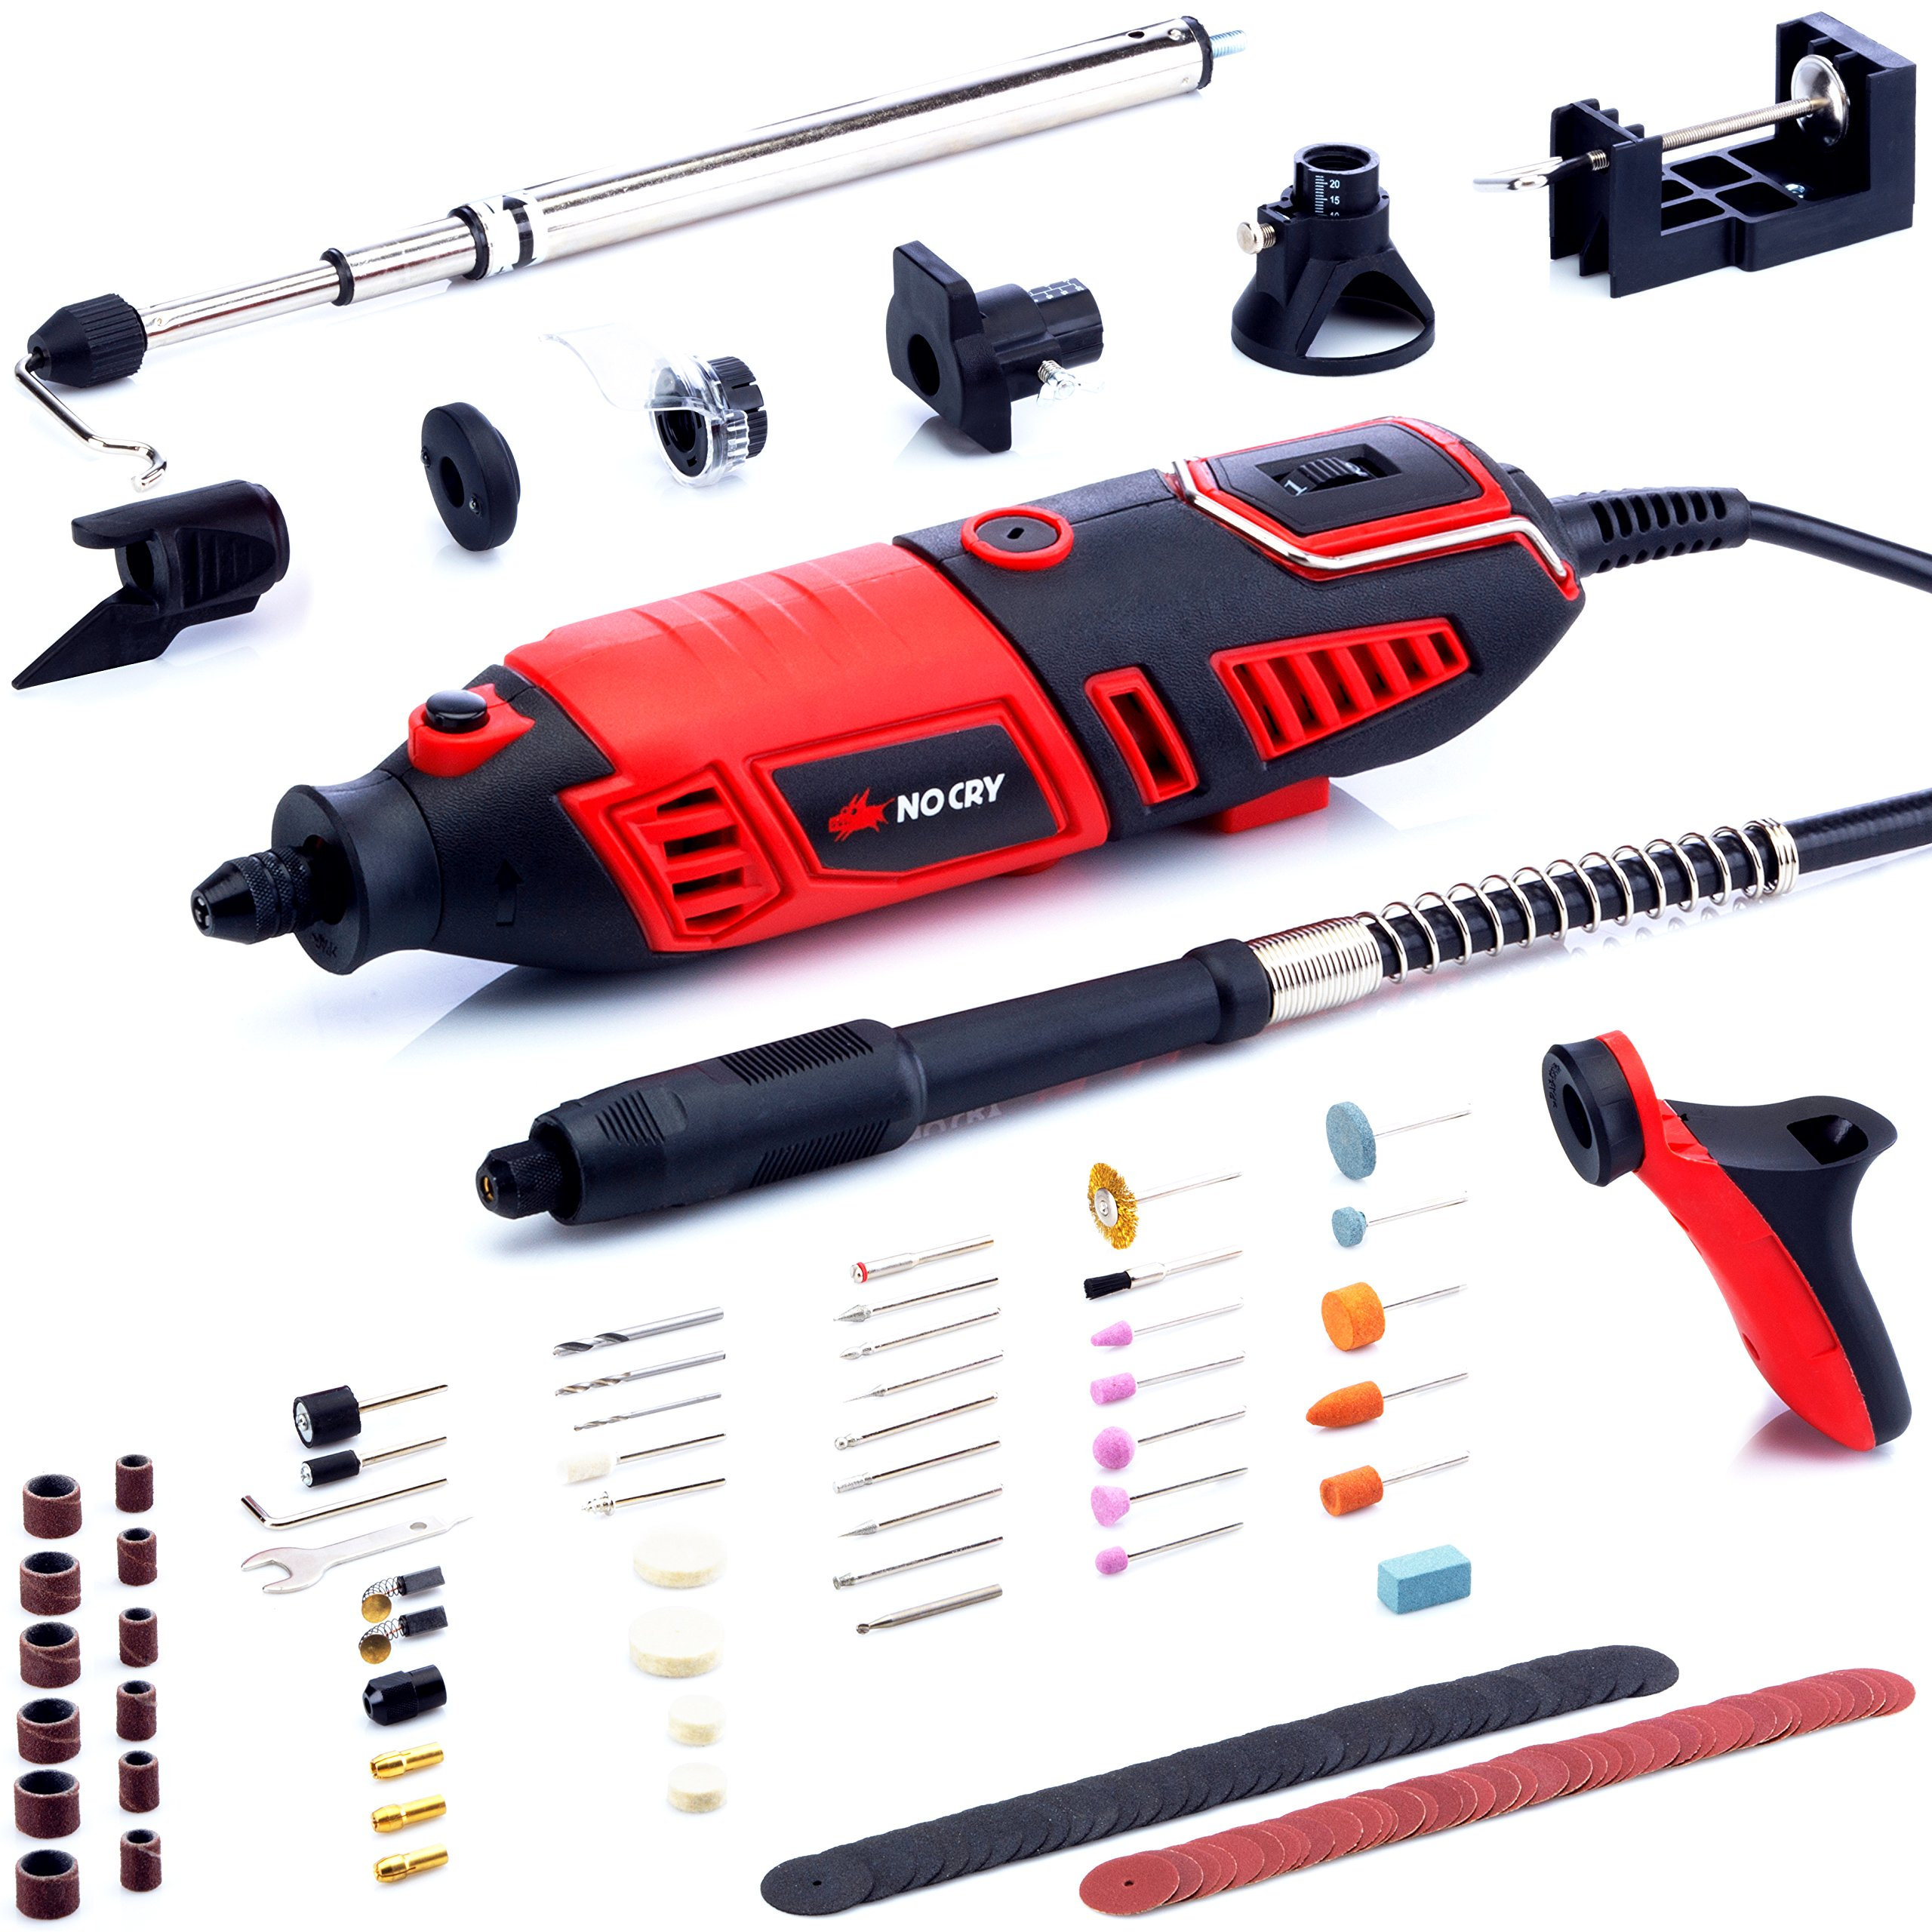 NoCry Professional Rotary Tool Kit - Heavy Duty 170W/1.4A Electric Motor, 8,000-35,000 rpm, 10 Attachments & 125 Accessories Included